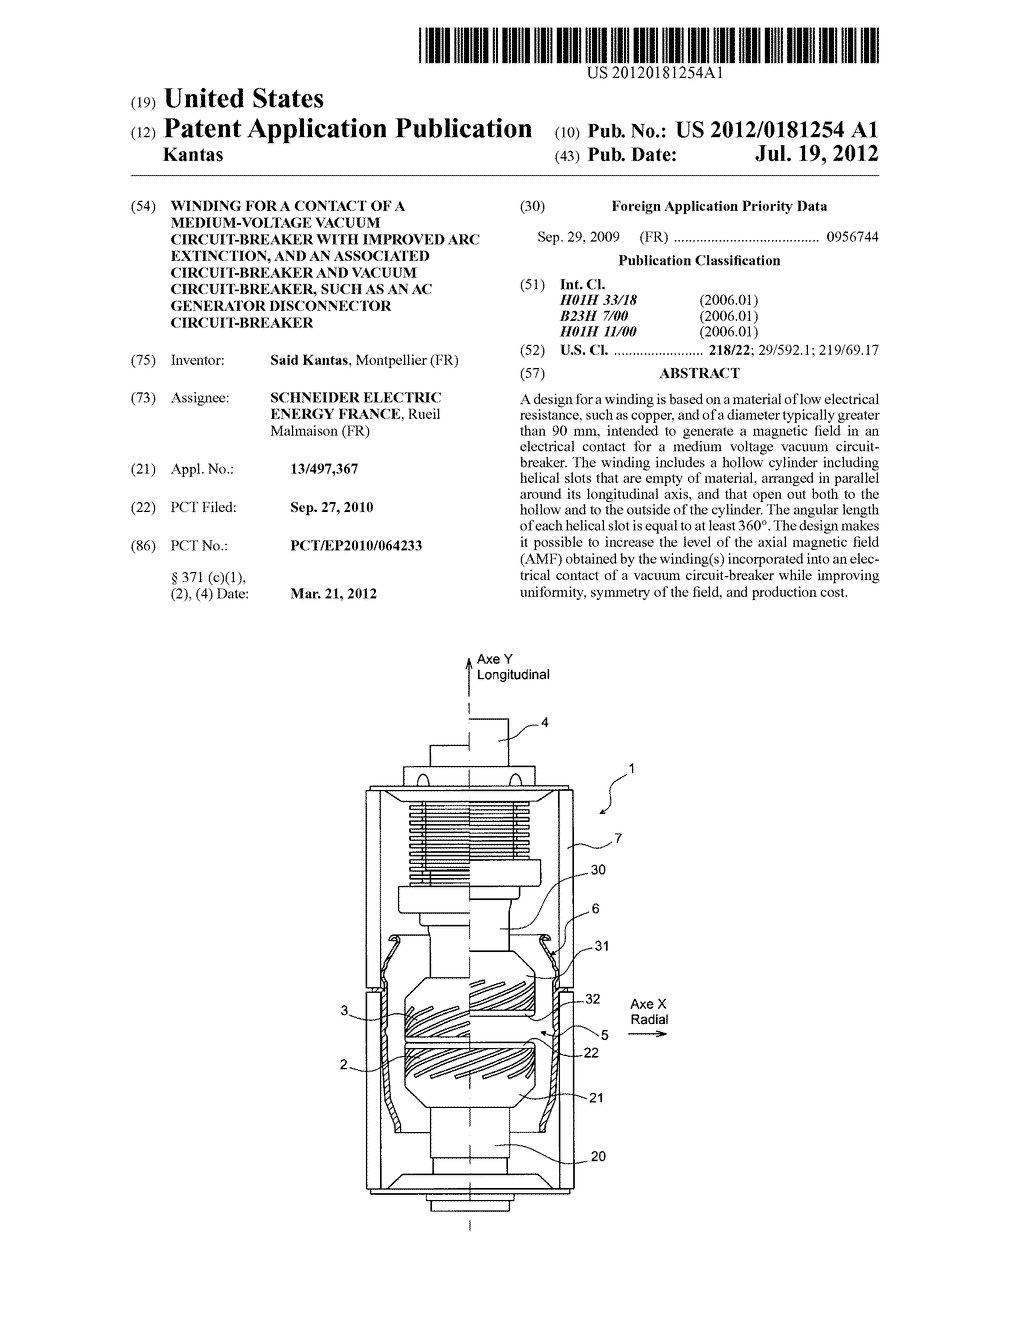 WINDING FOR A CONTACT OF A MEDIUM-VOLTAGE VACUUM CIRCUIT